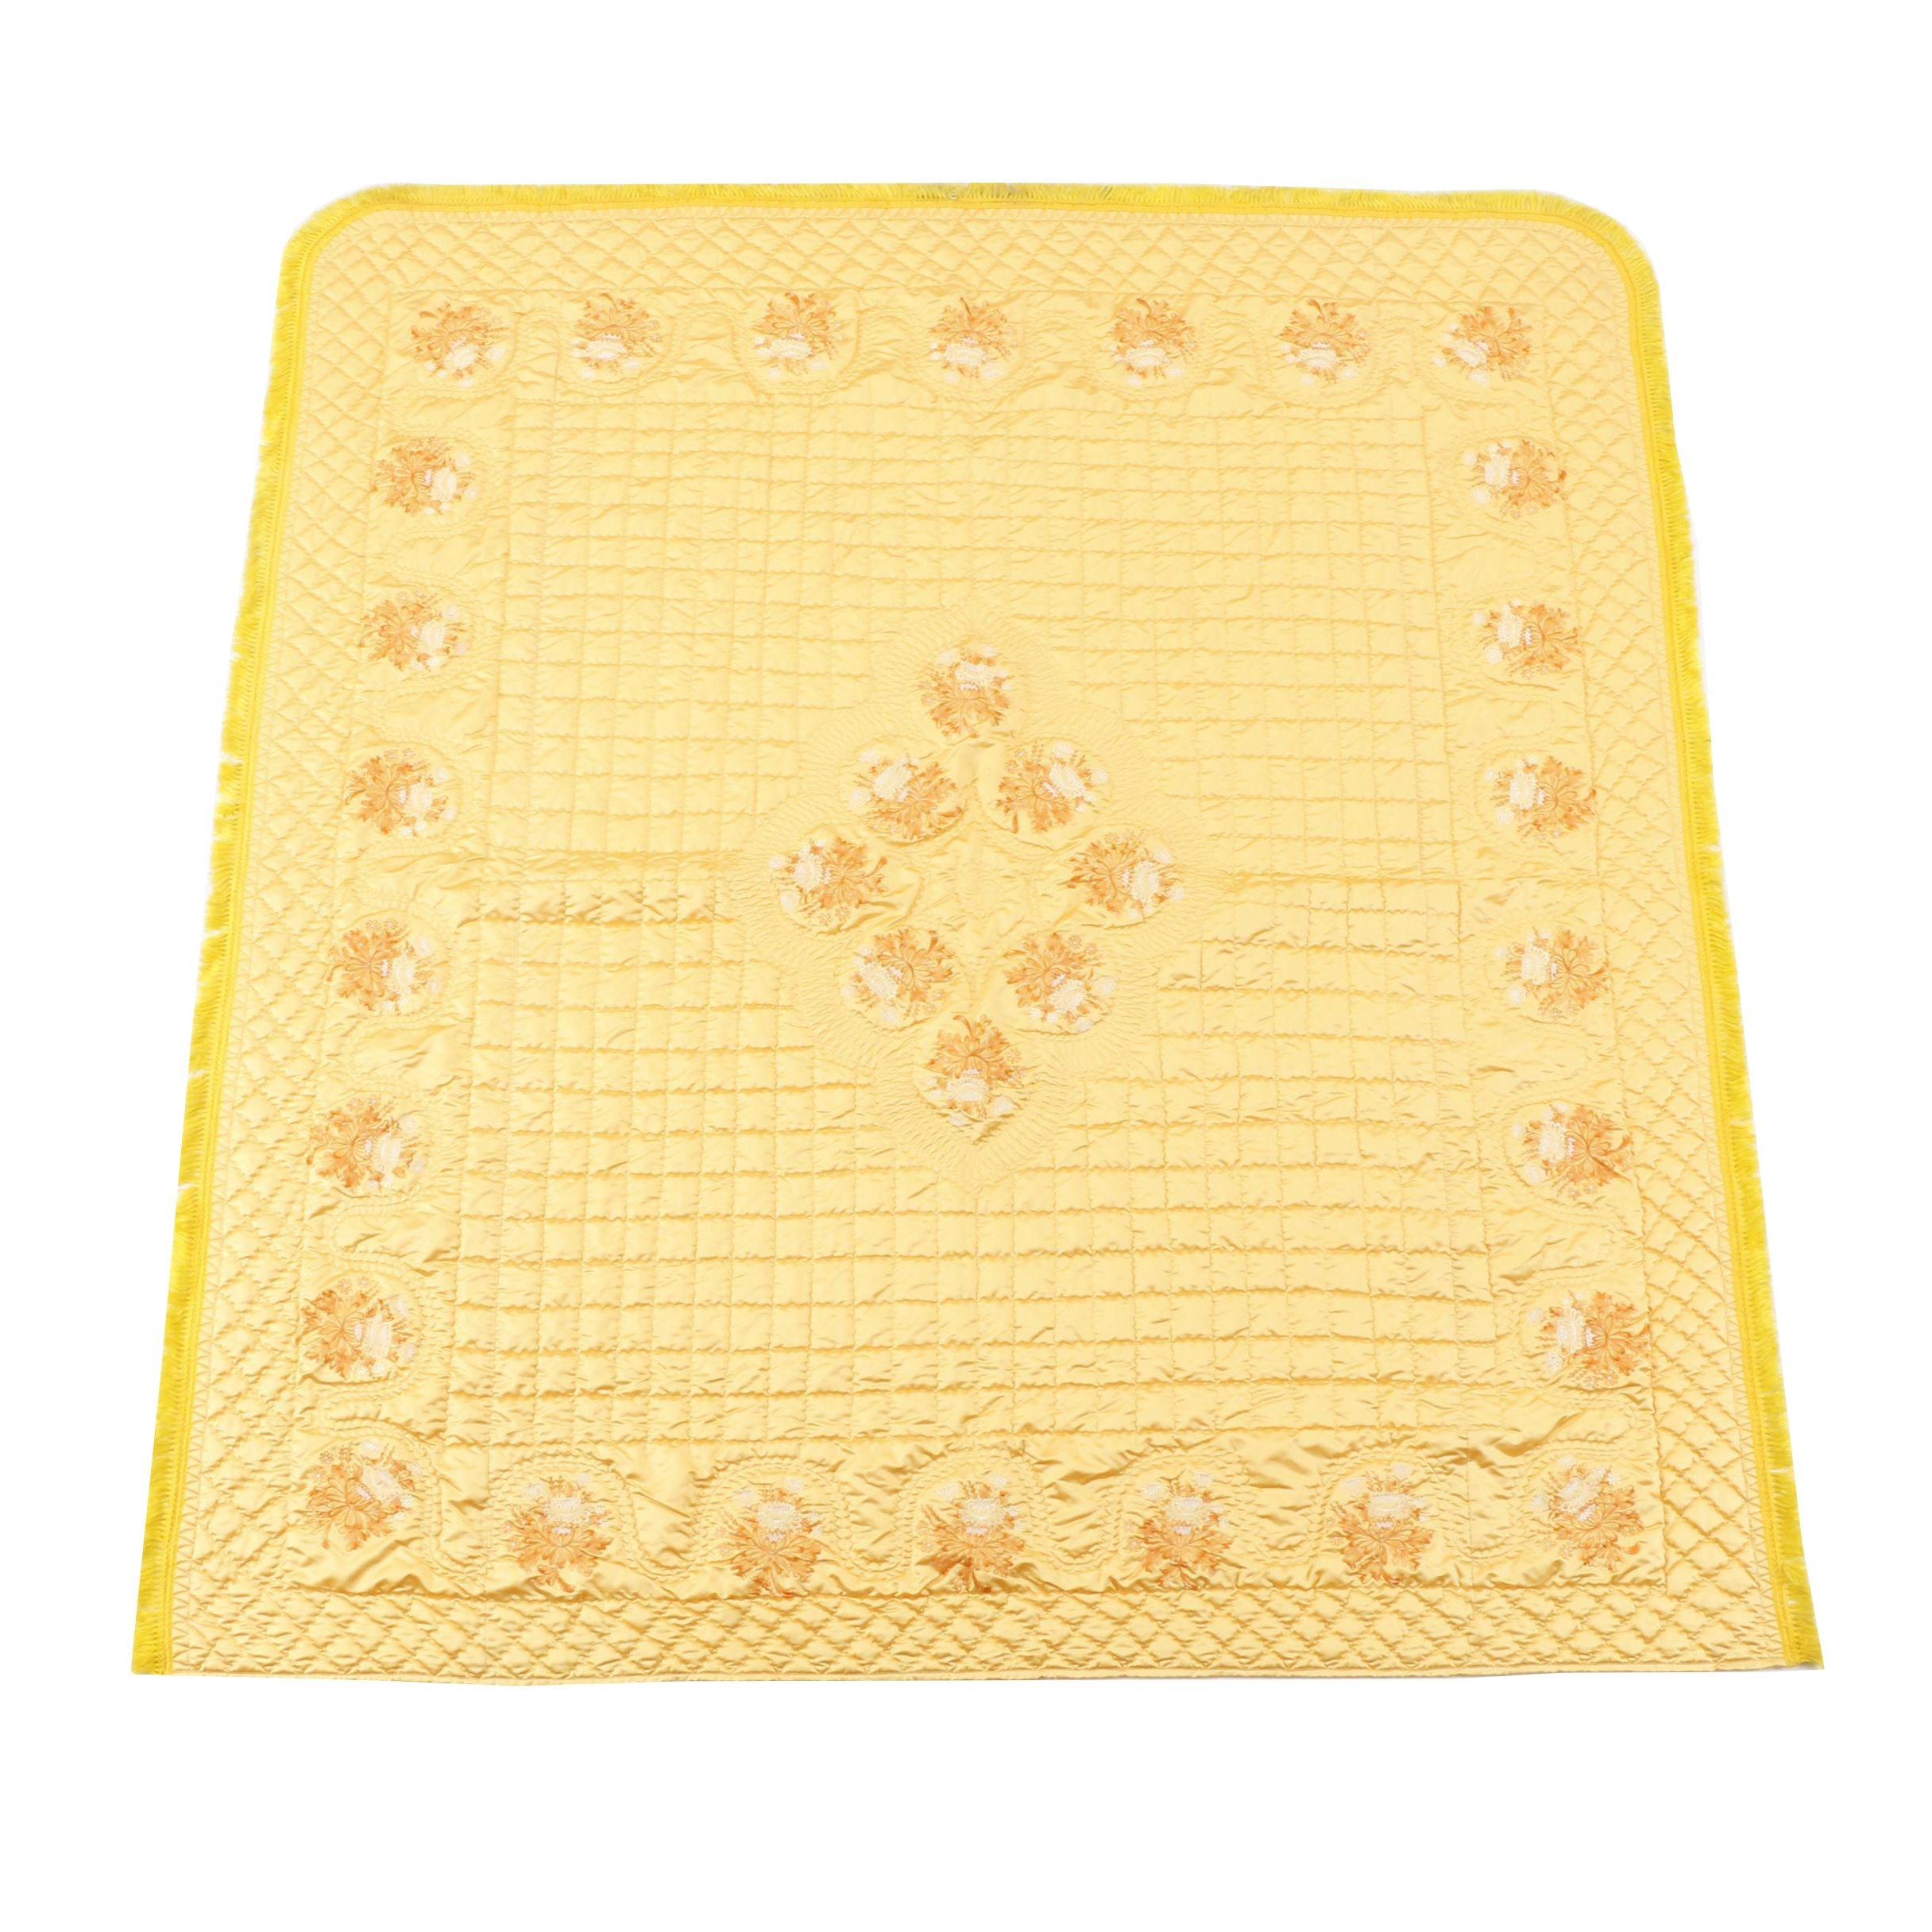 1960s Golden Rod Yellow Chinese-Inspired Queen Size Bedspread